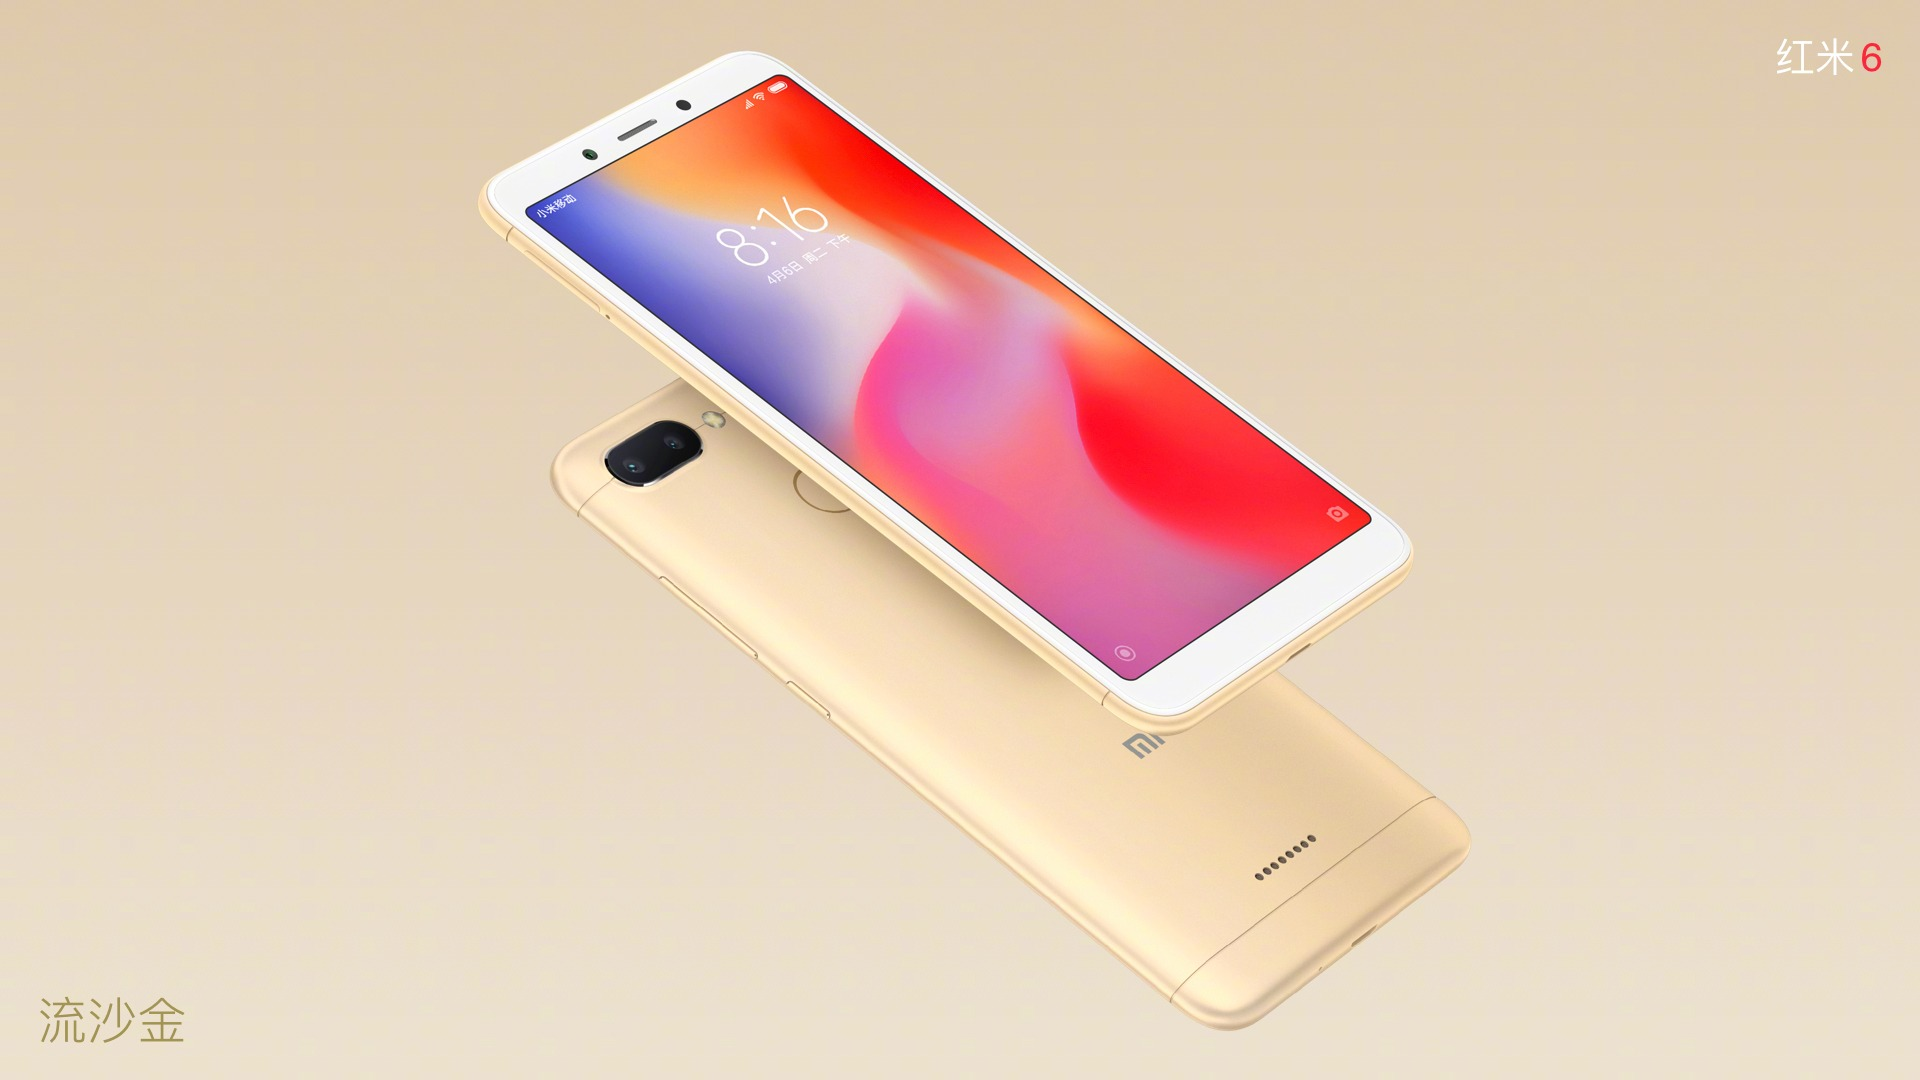 Xiaomi Redmi 6 in Sand Gold